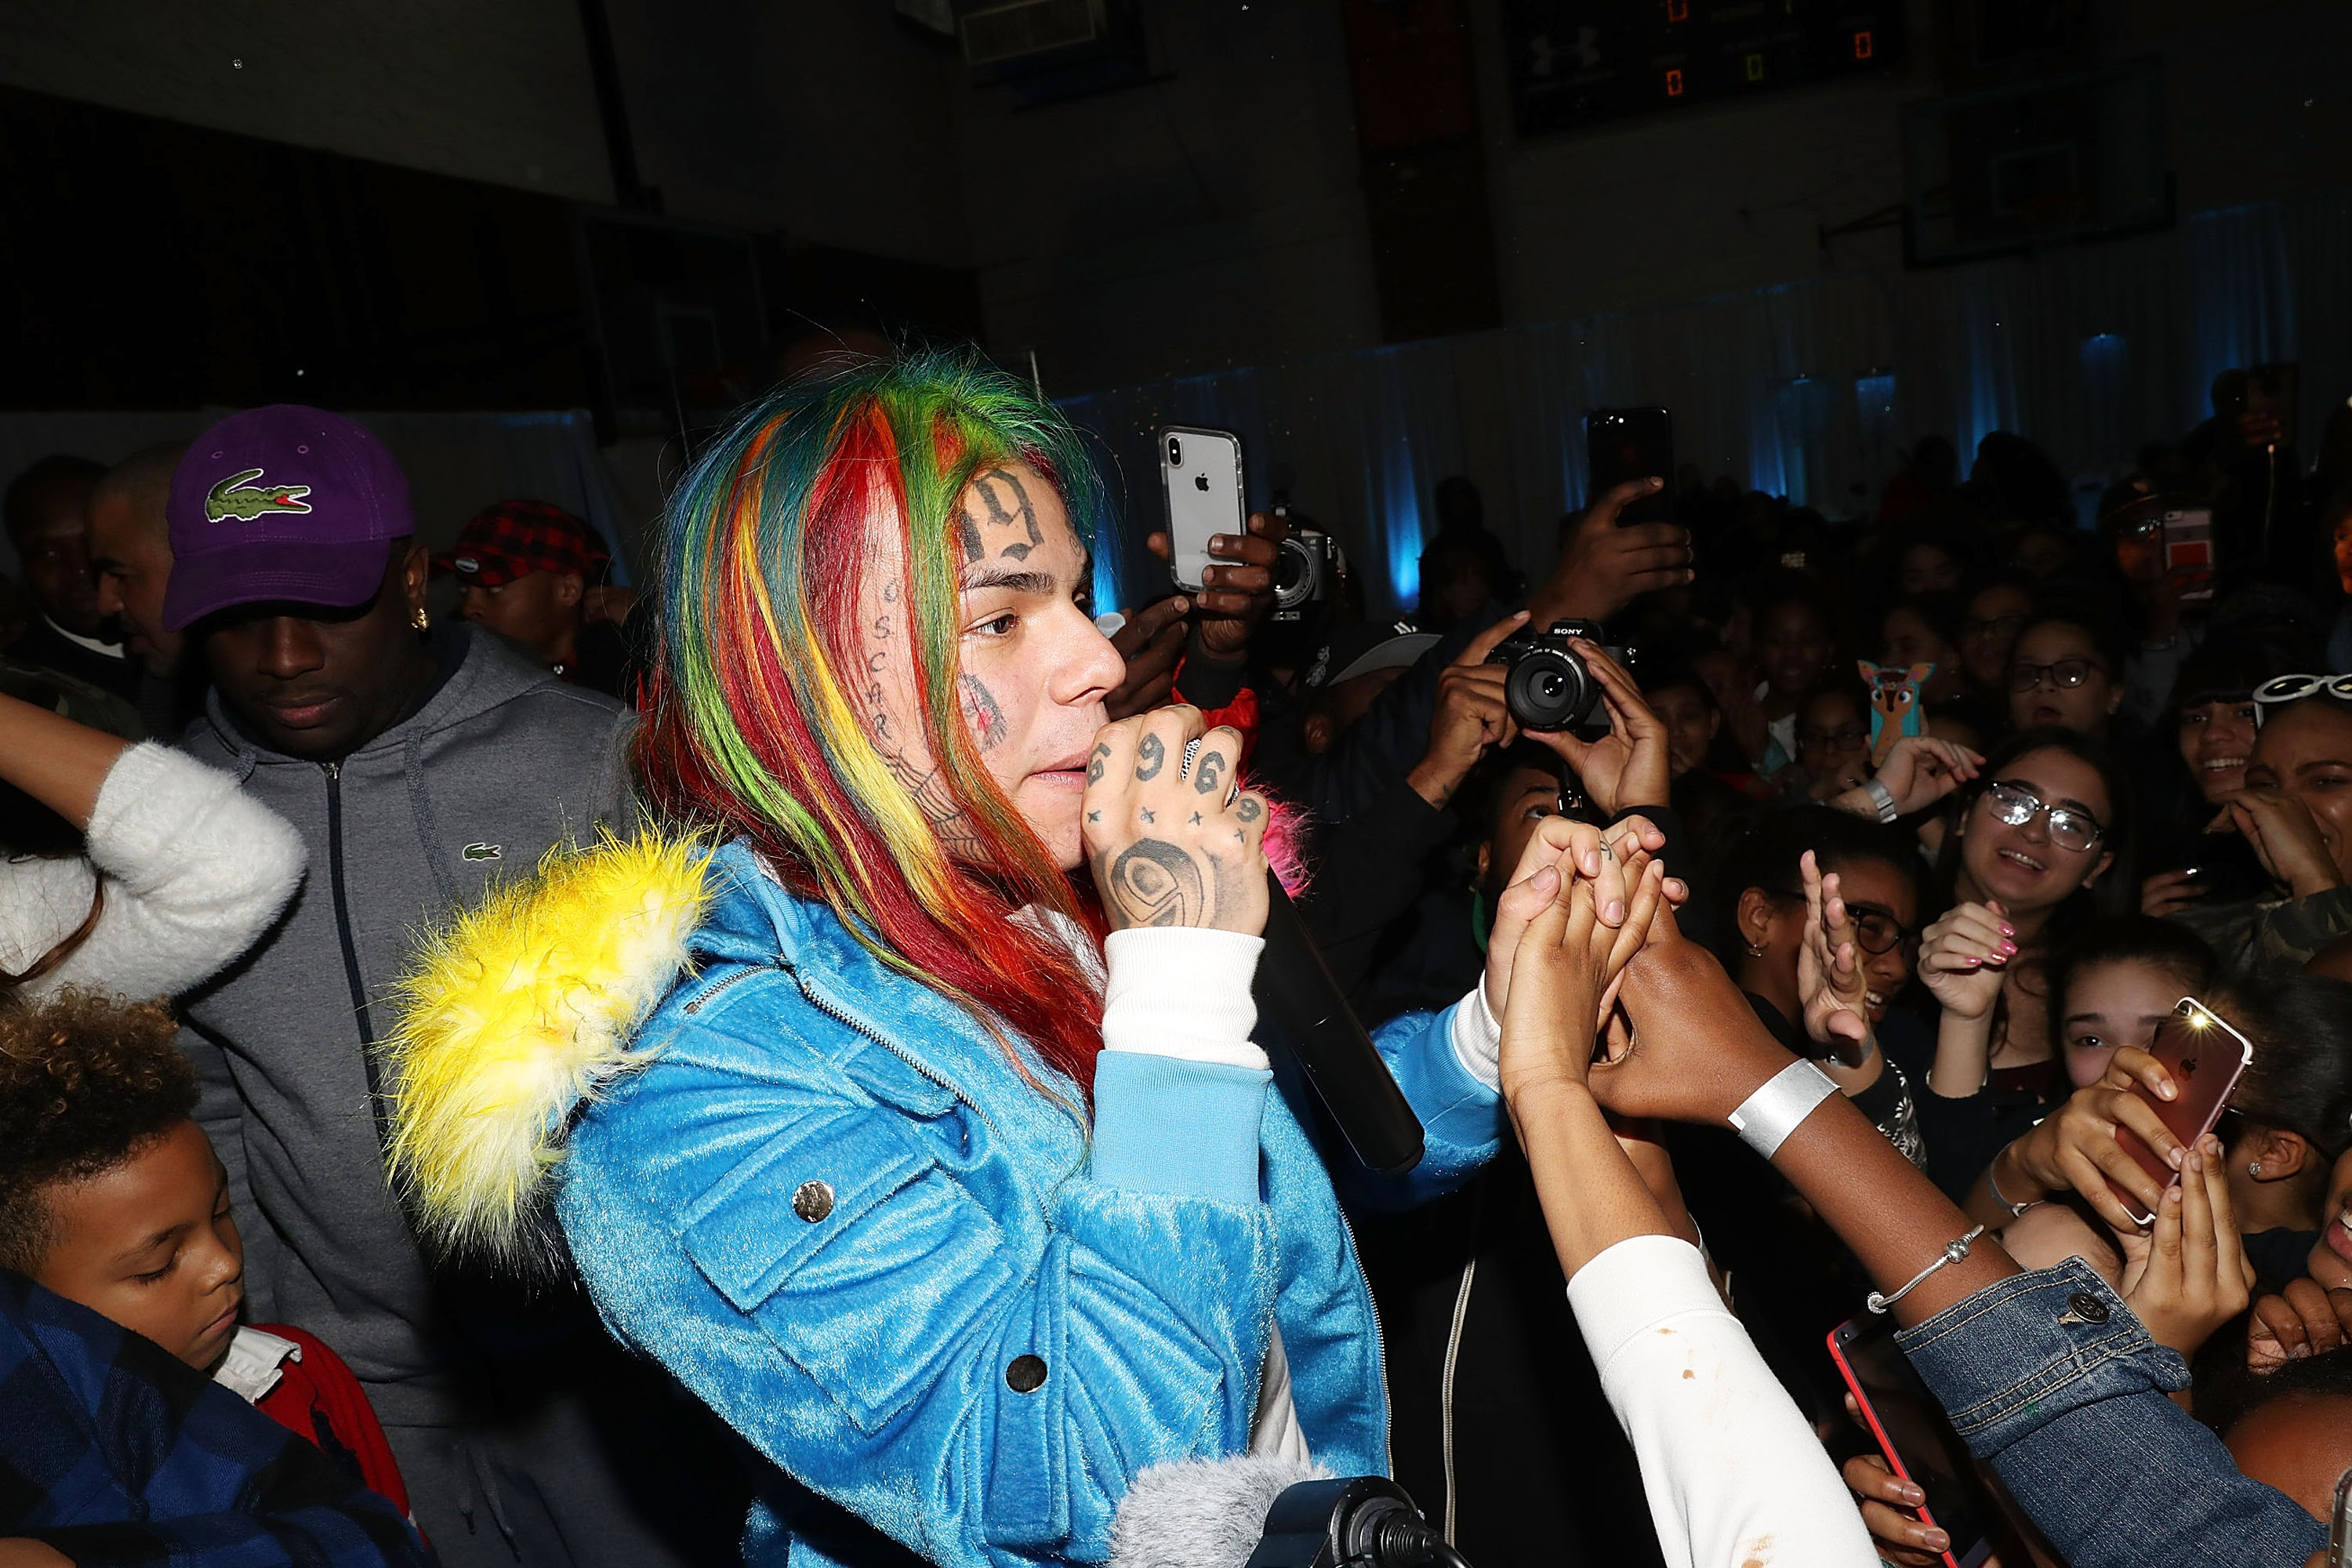 tekashi69 6ix9ine soundcloud rap rainbow hair face tattoos